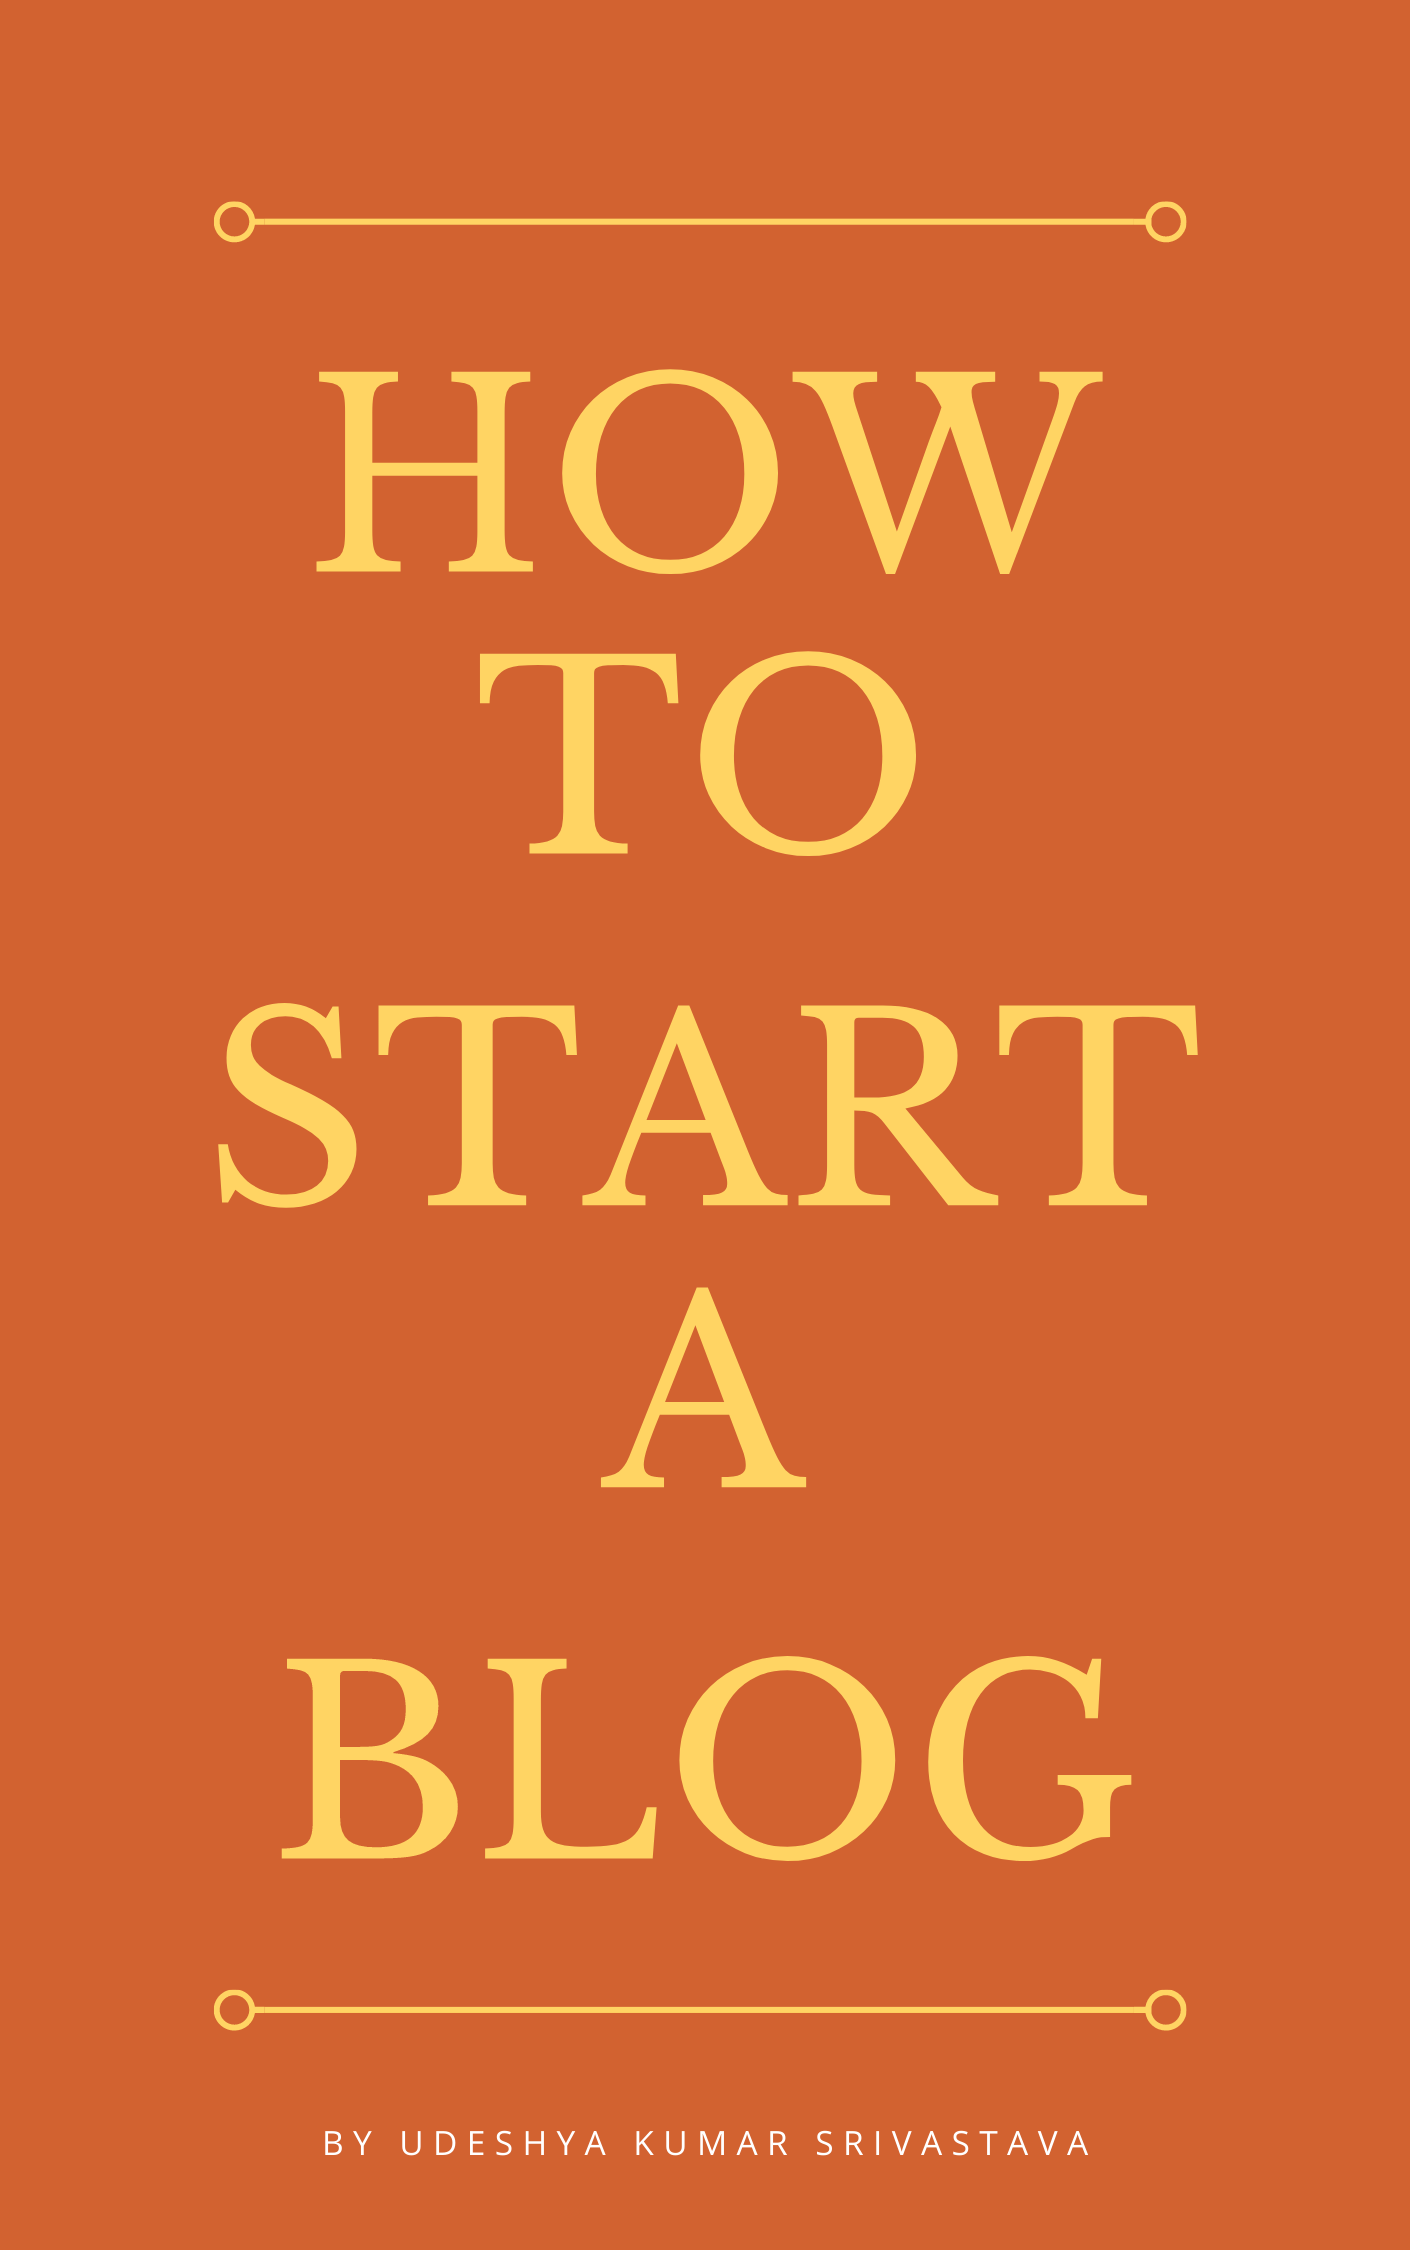 How to Start a Blog's Book Image